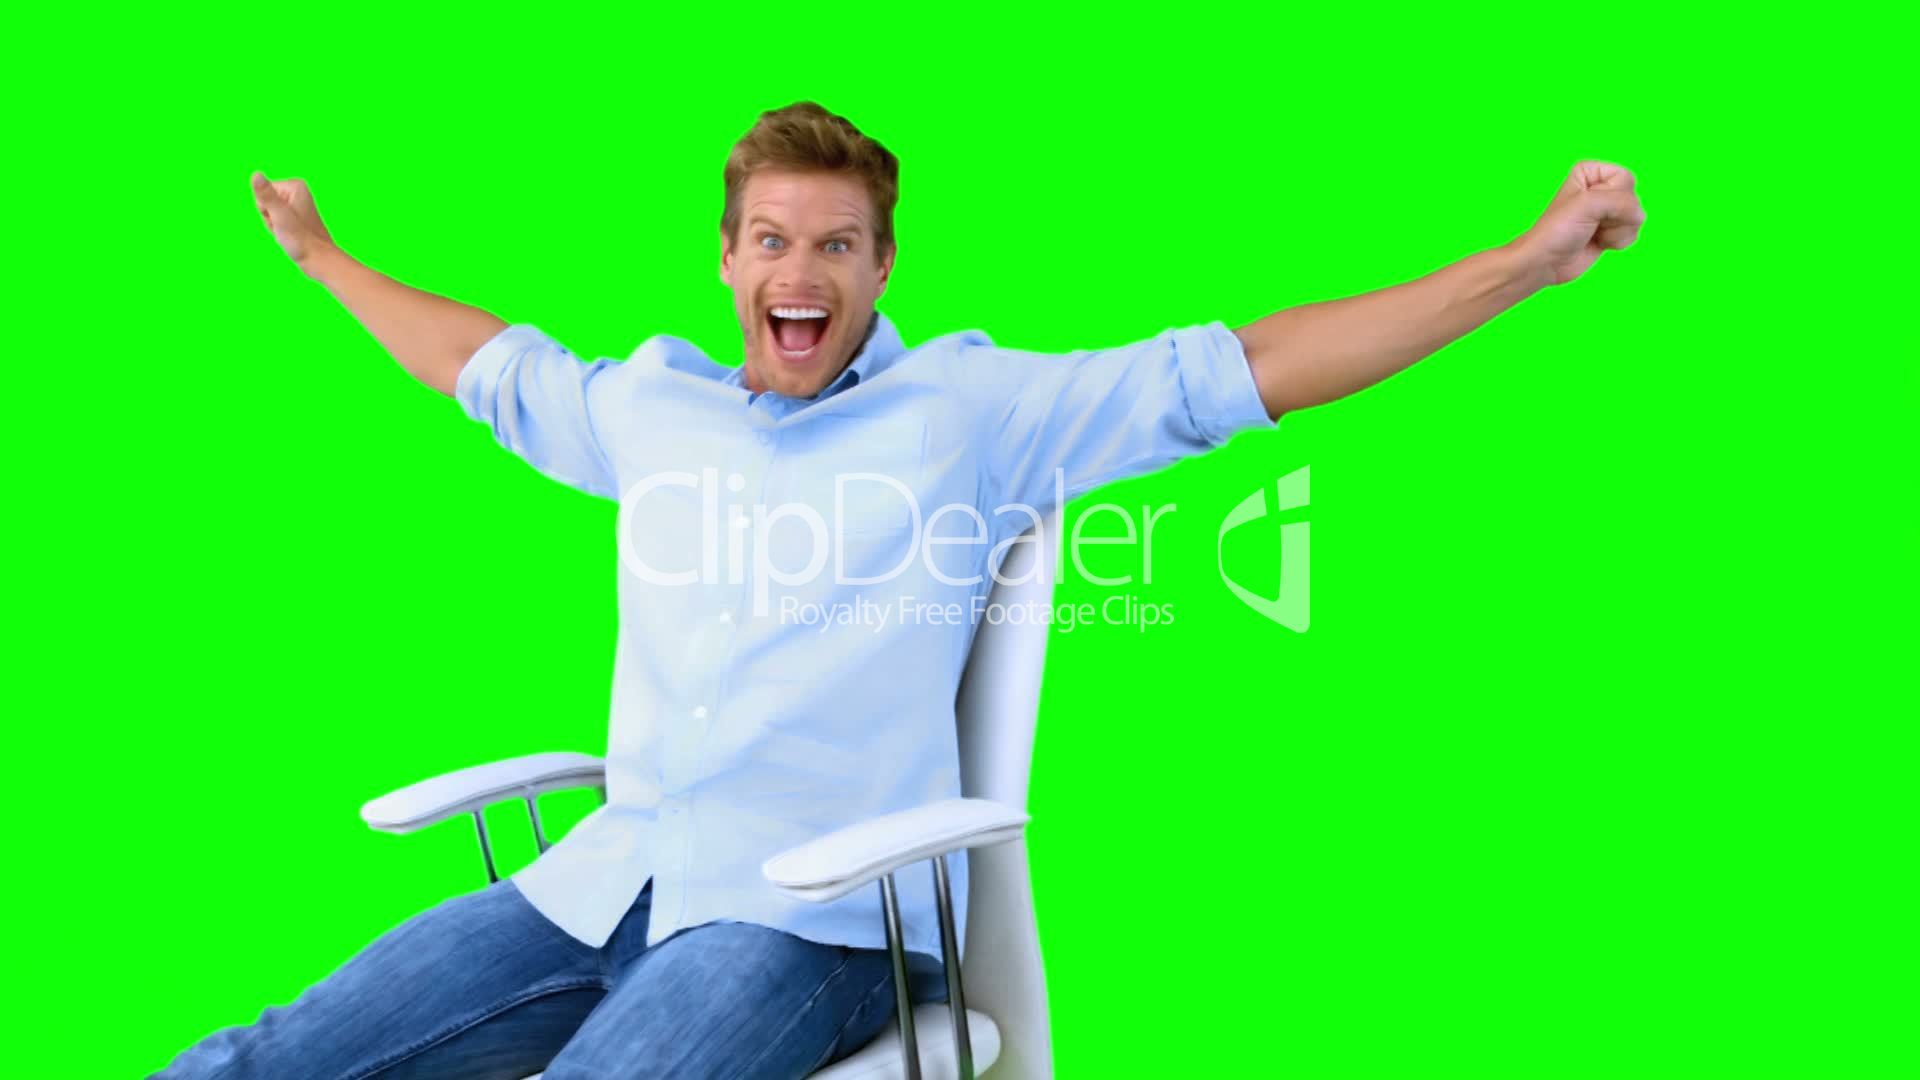 swivel chair definition dining room table and chairs for sale man sitting on with raised arms to show his success green screen: royalty-free ...